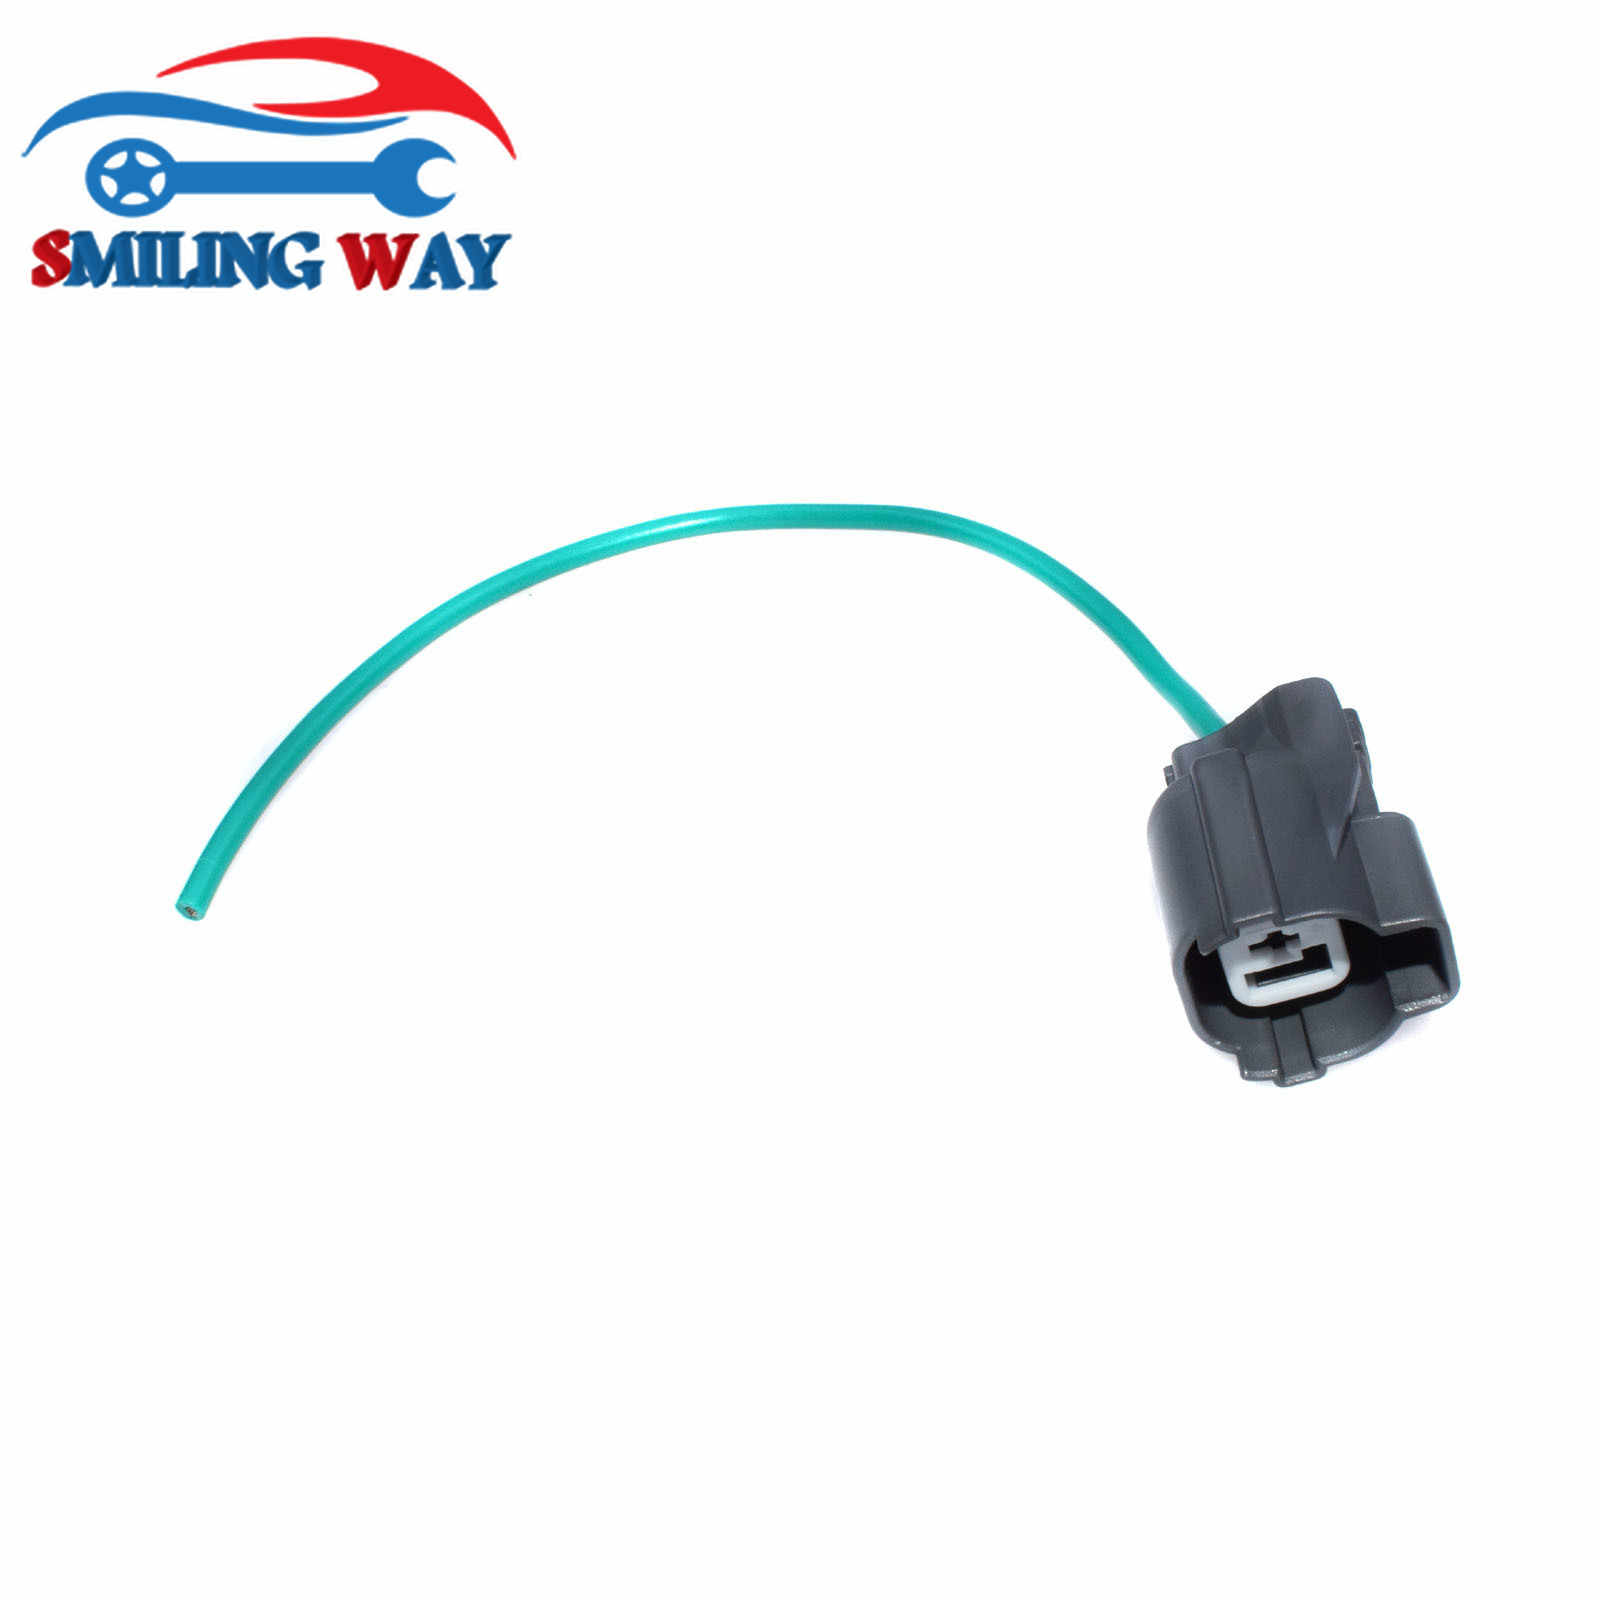 vtec solenoid switch oil pressure switch connector wire harness wiring pigtail plug for honda acura  [ 1600 x 1600 Pixel ]